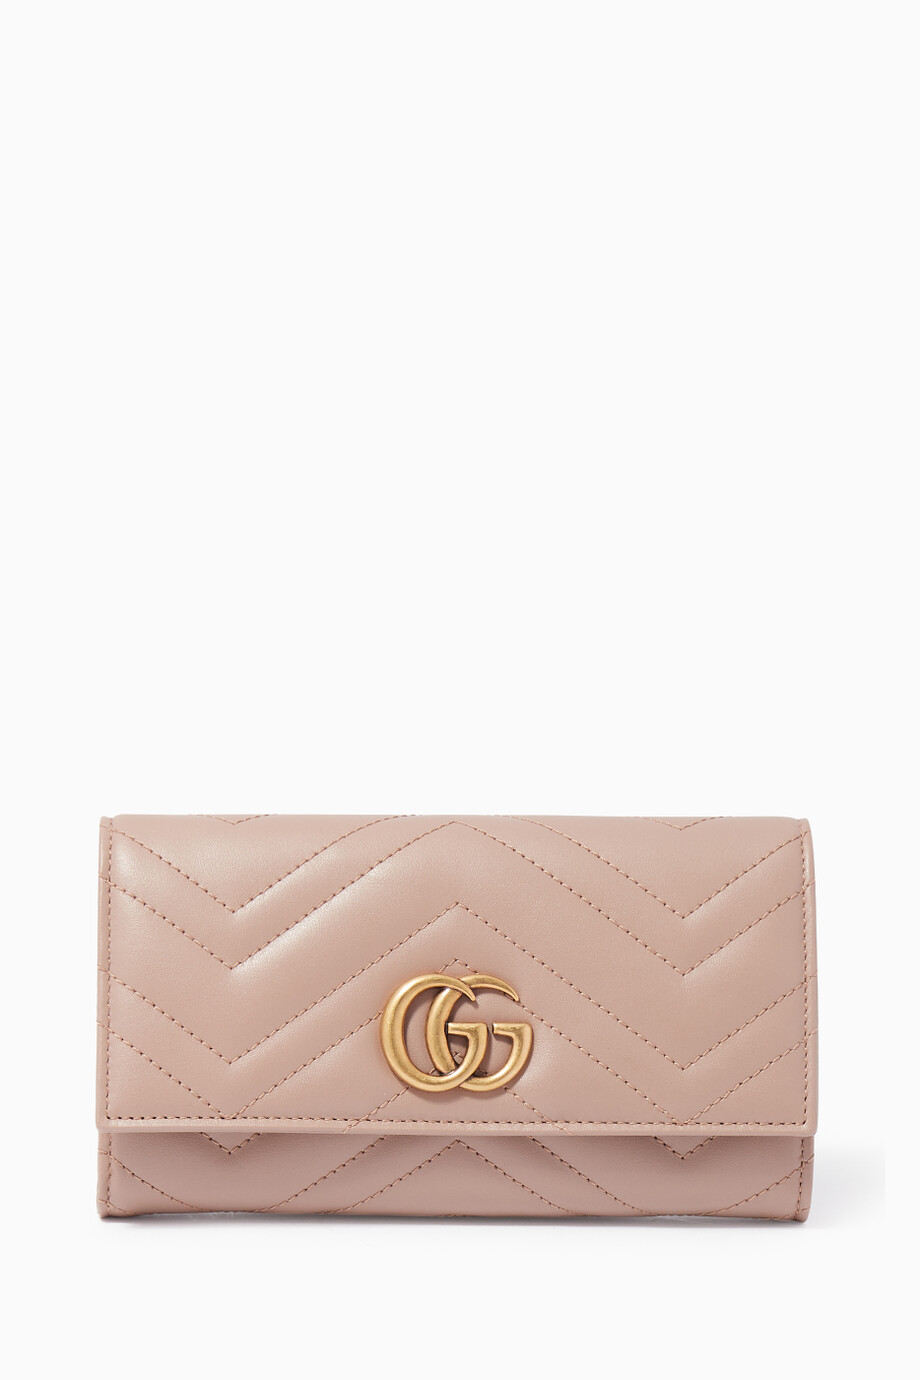 63cd39a6df24eb Shop Gucci Neutral Light-Pink GG Marmont Continental Wallet for ...